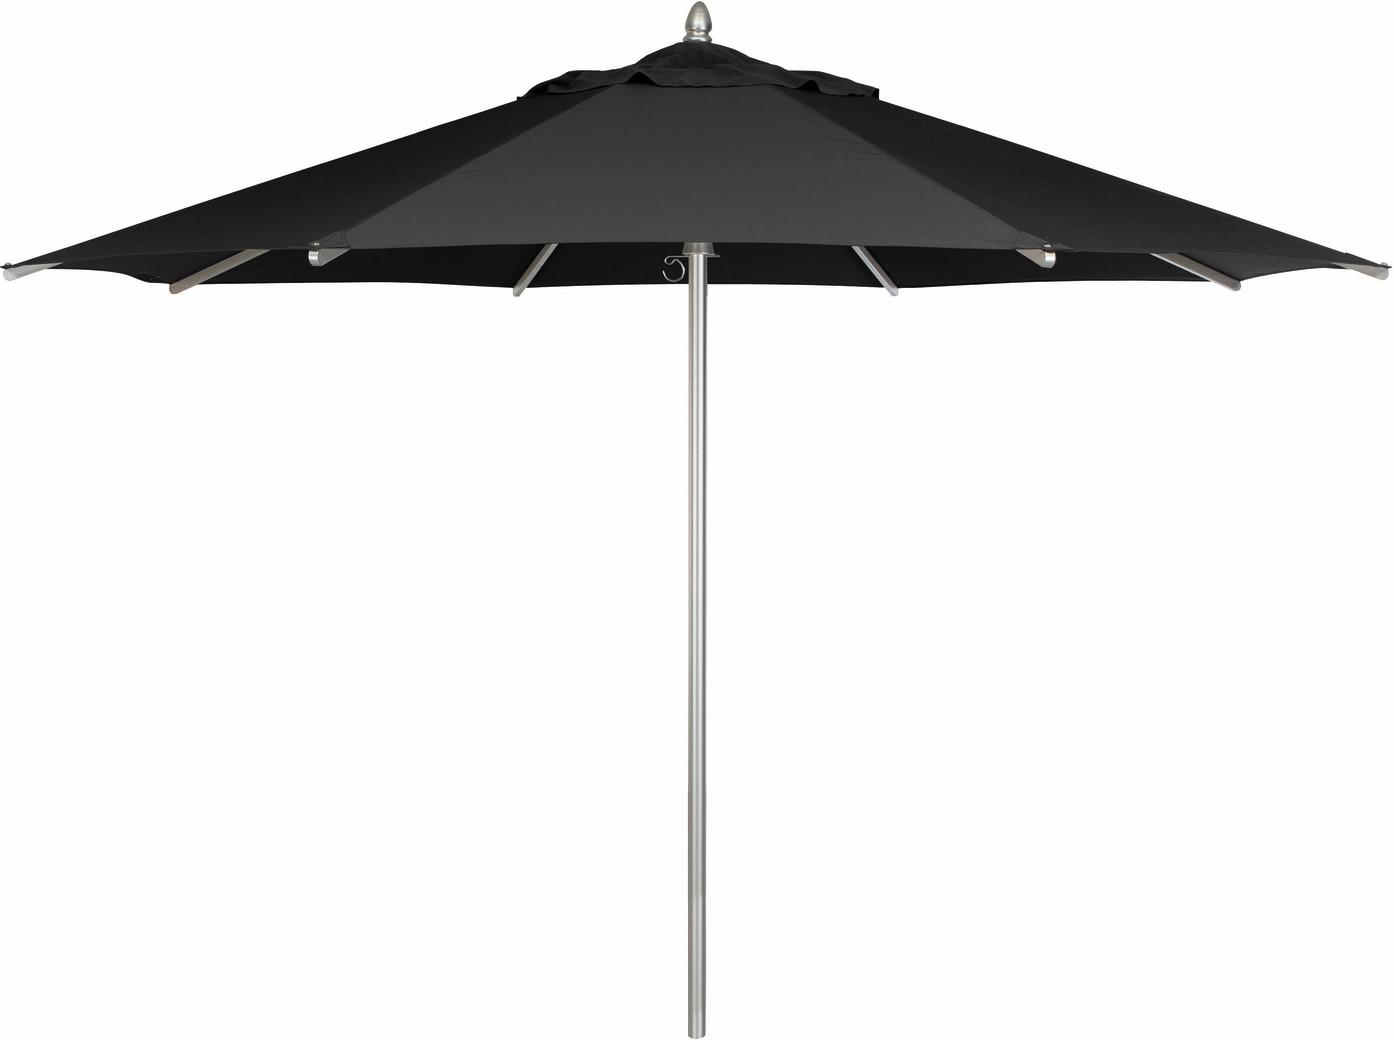 Umbrella - aluminium - Ø350 - black